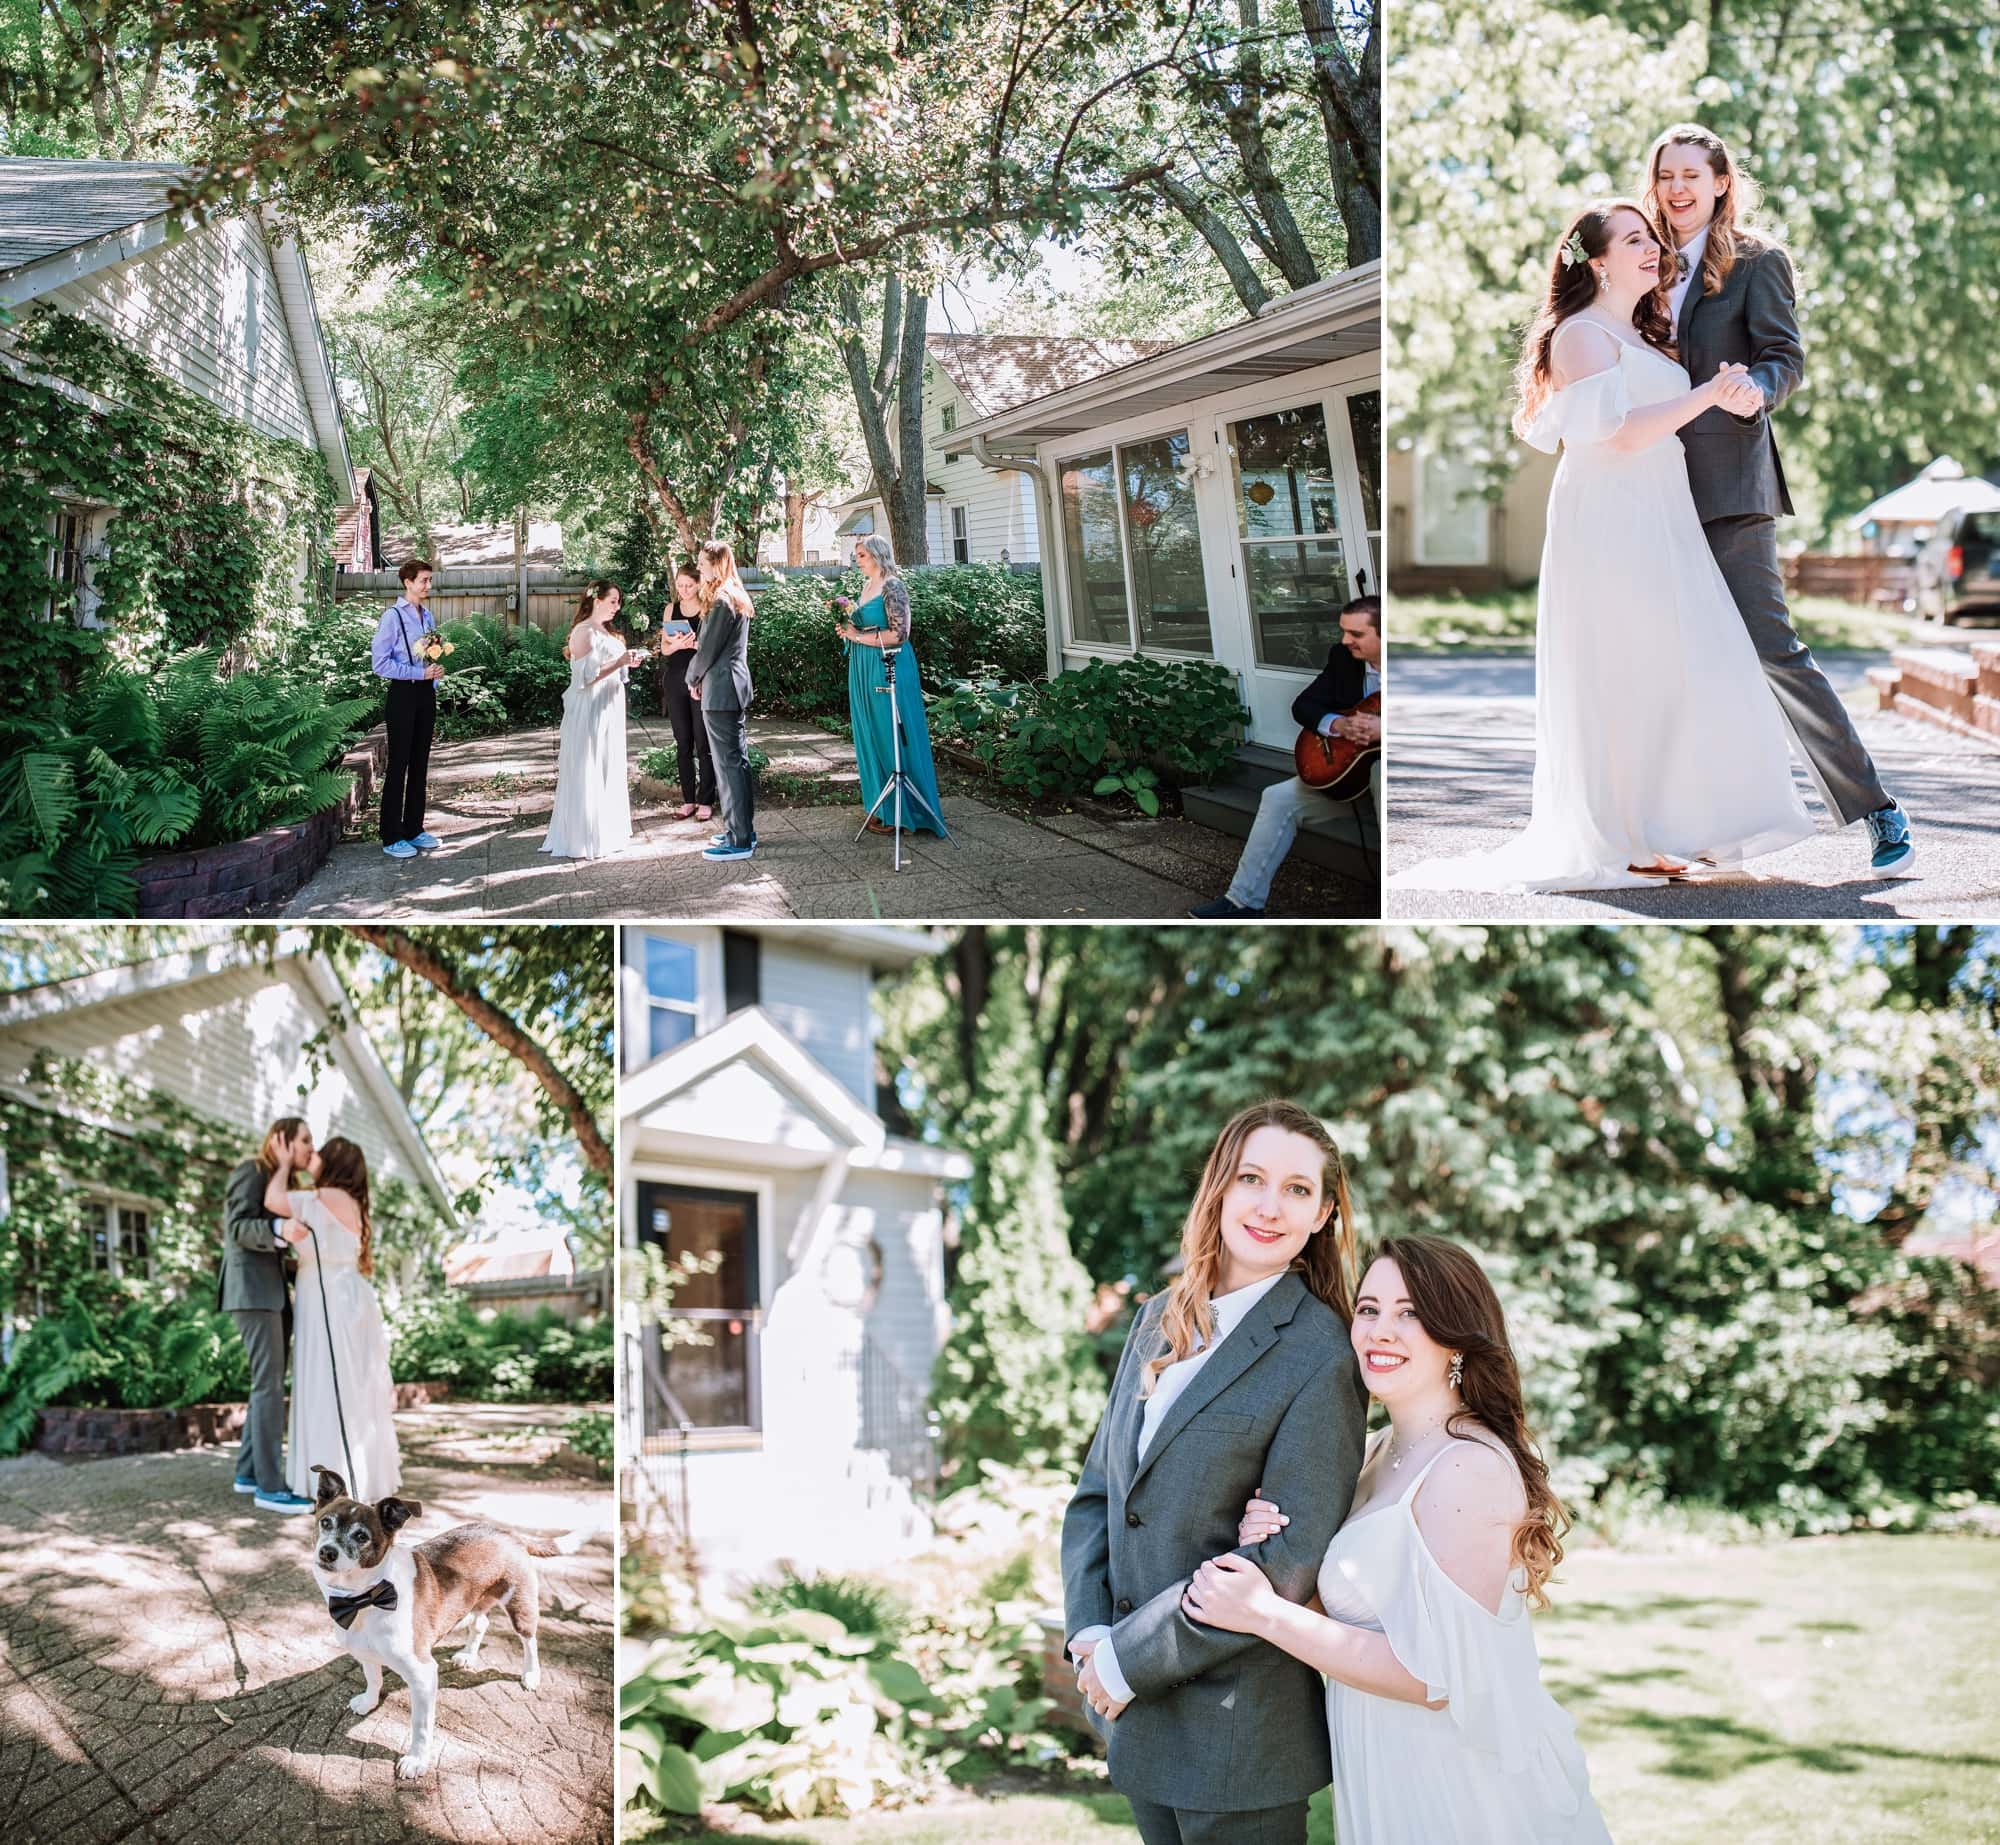 Maggie and LeAnn's micro wedding photos in St. Paul, Minnesota.